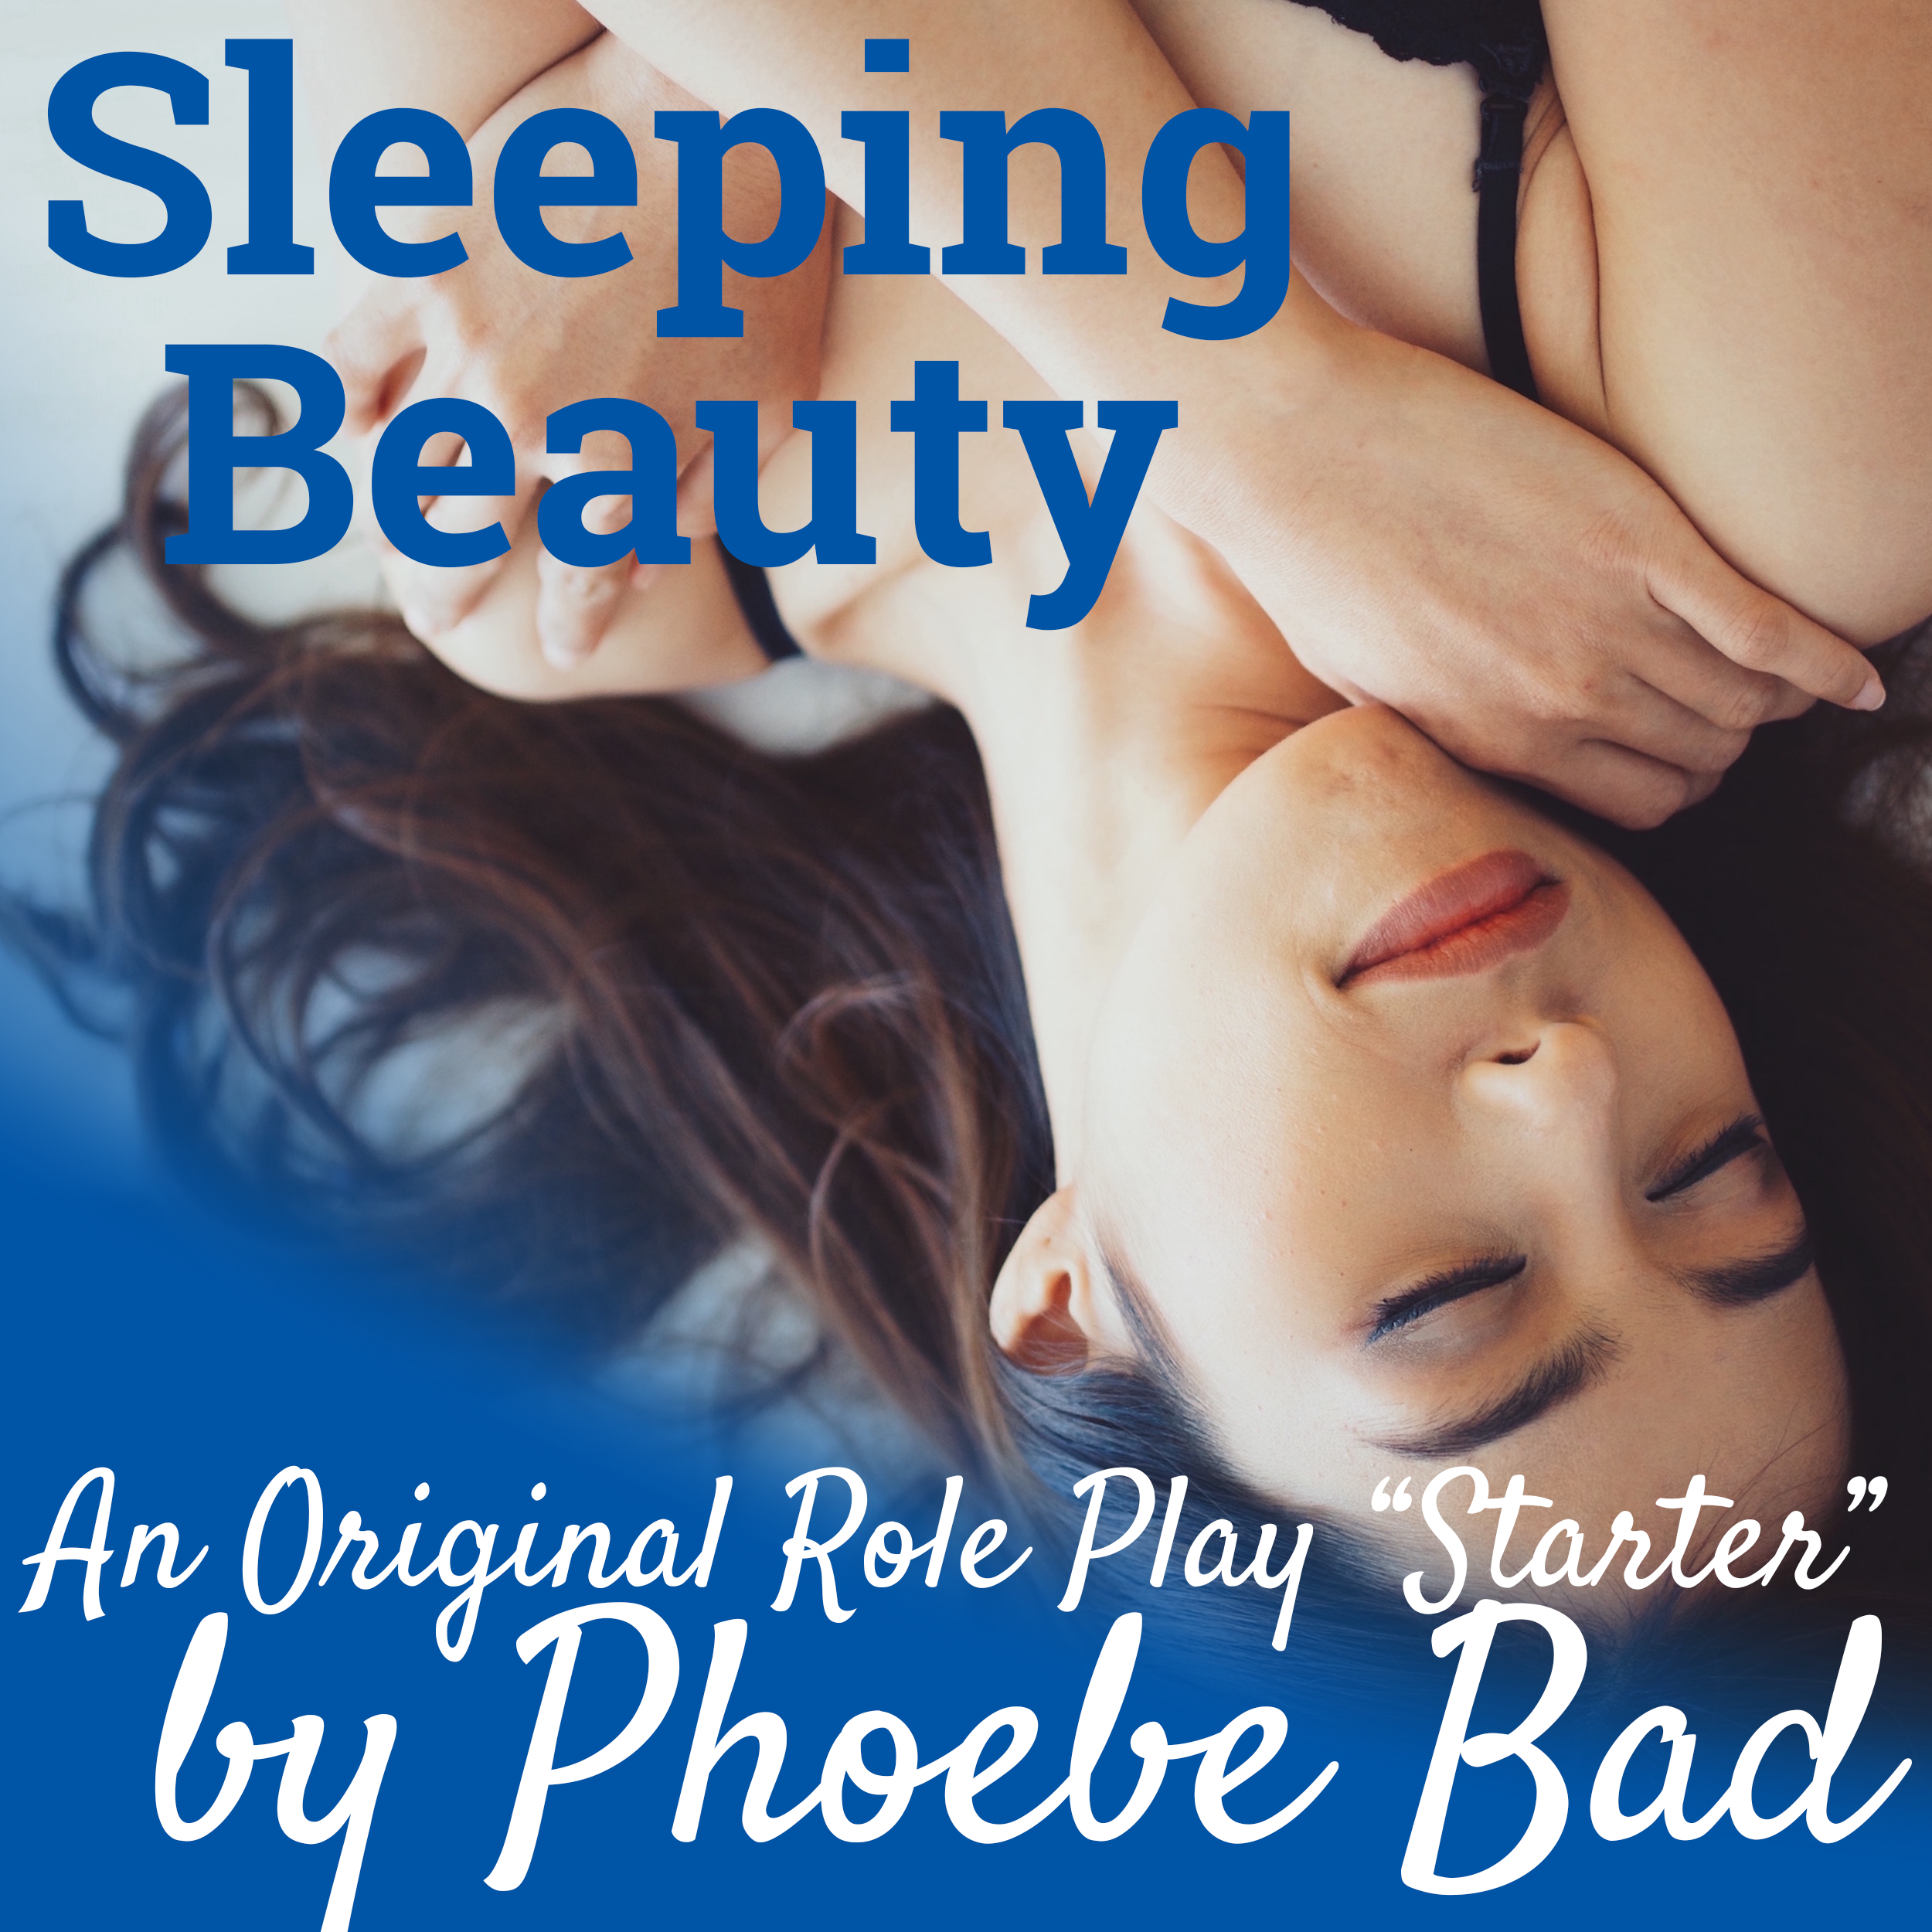 Role Play Starter: Sleeping (GB)